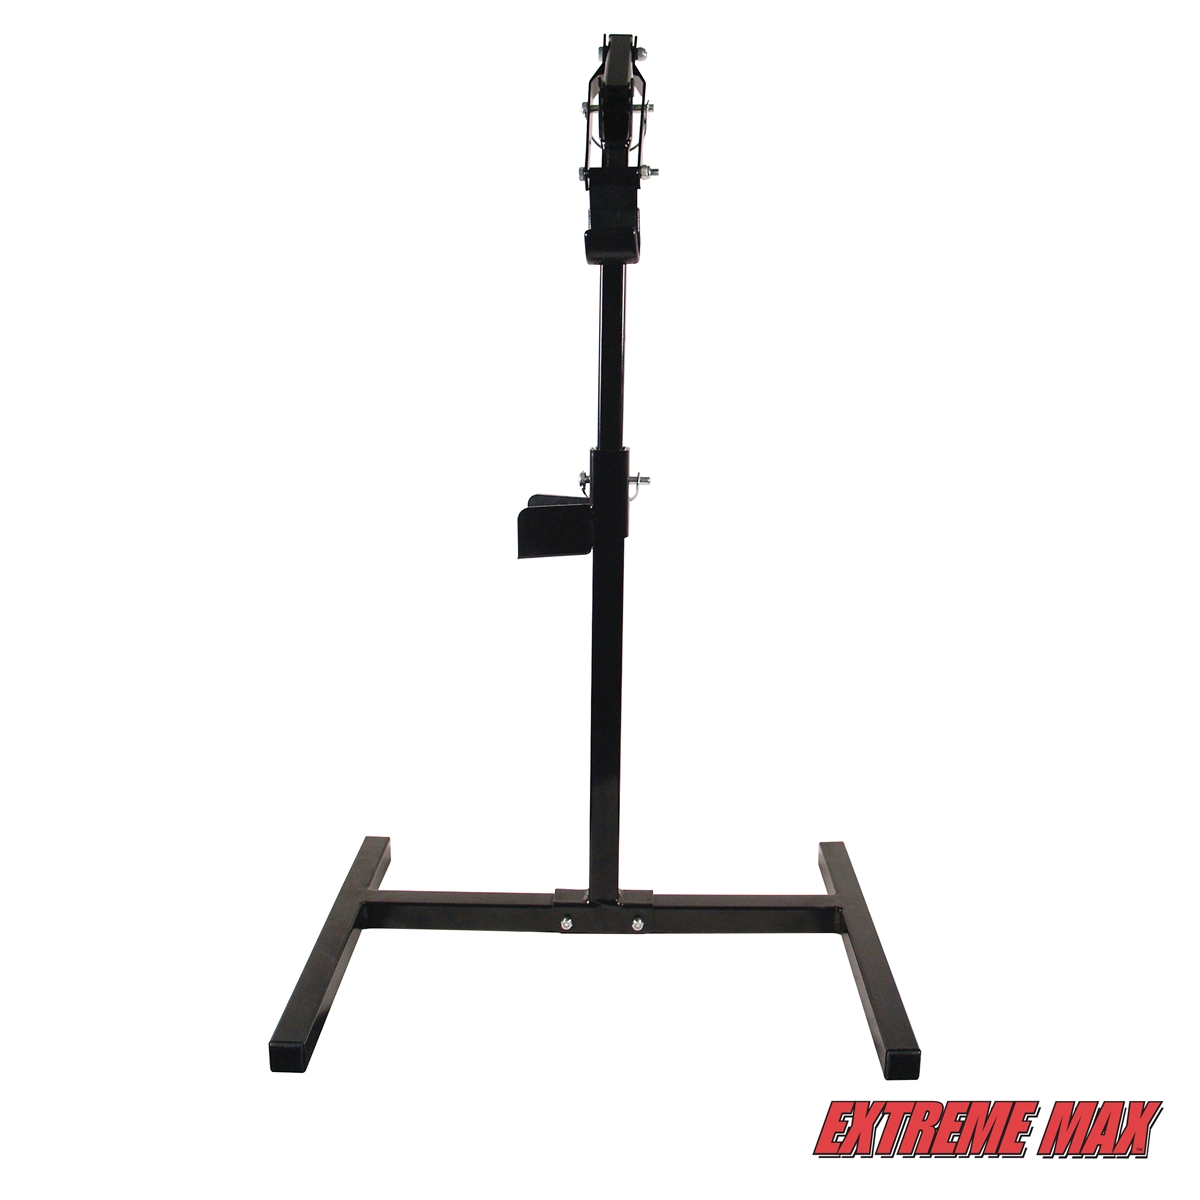 Lever Lift Stand : Extreme max  lever lift stand with handlebar cup